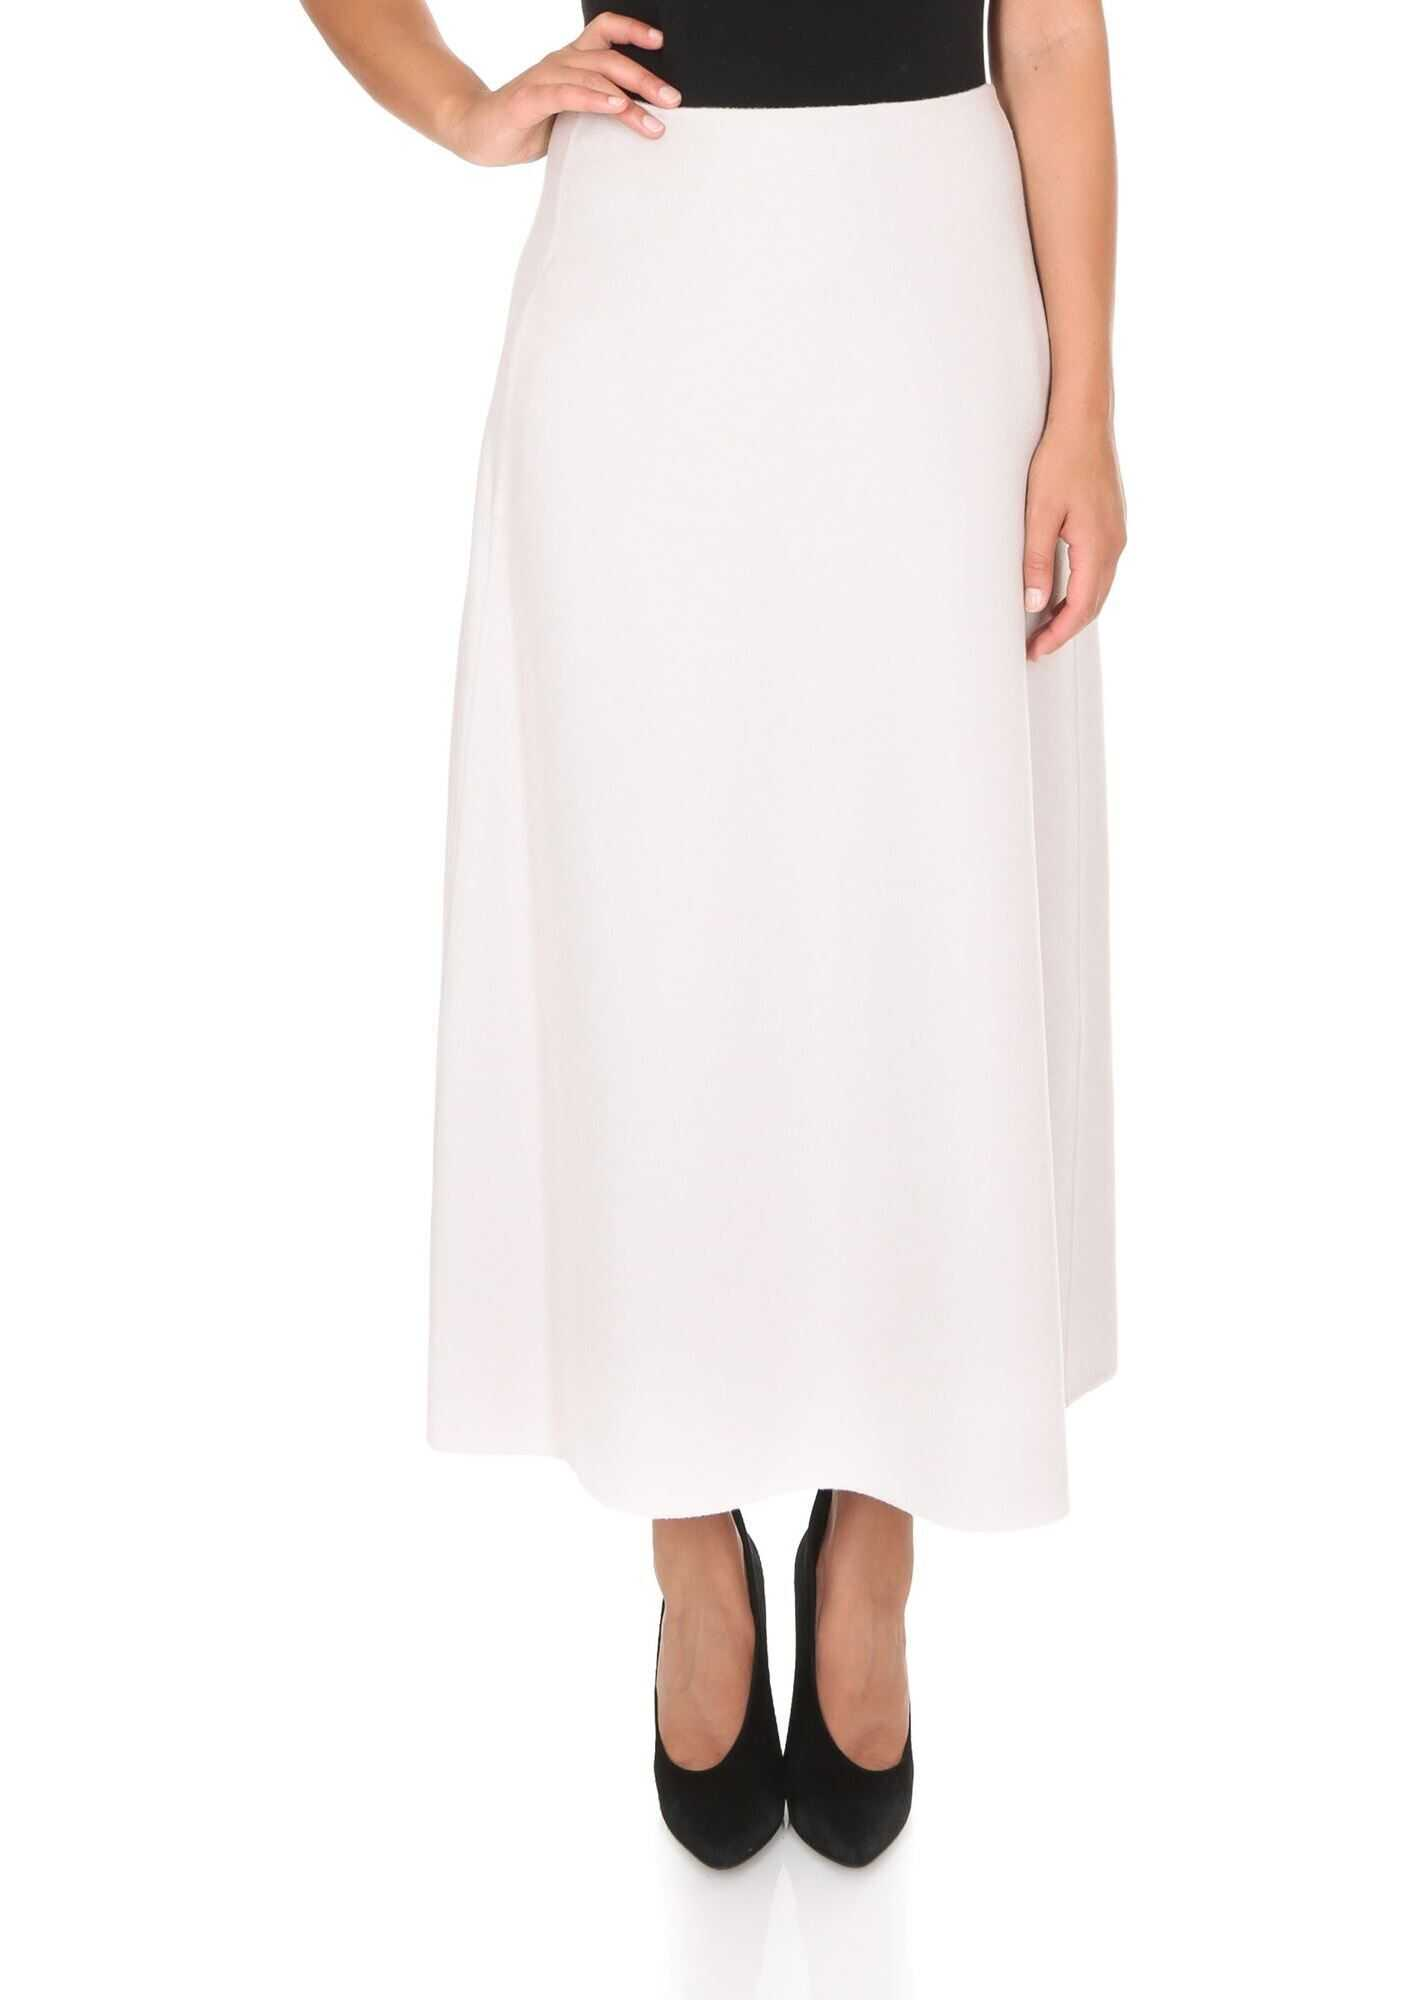 Max Mara Vociare Skirt In Ivory Color White